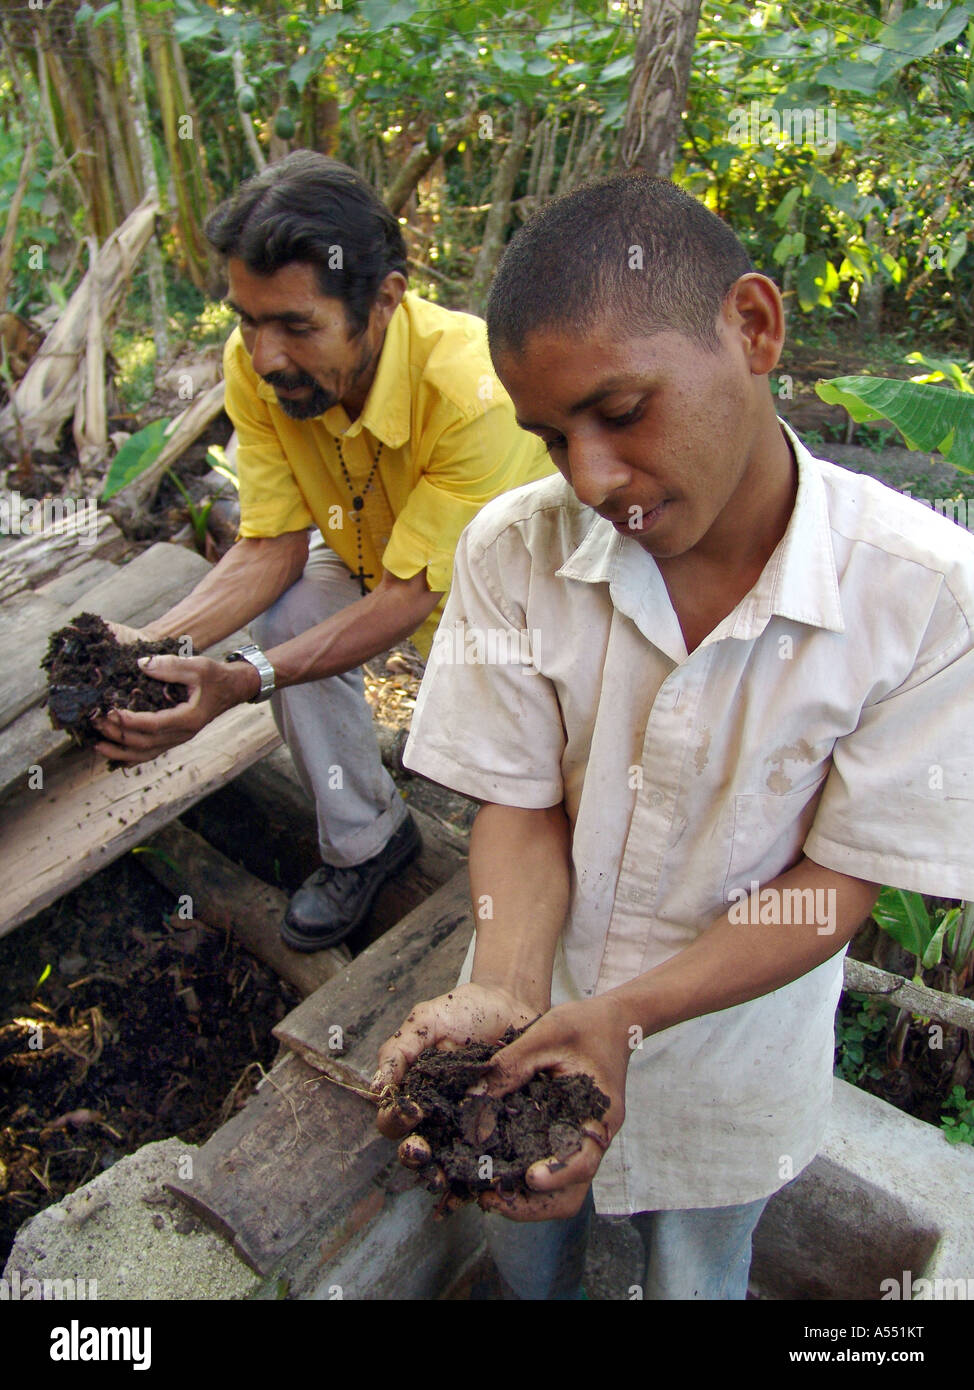 Painet ip2352 nicaragua two farmers father son examining organic compost made worm culture jalapa country developing - Stock Image